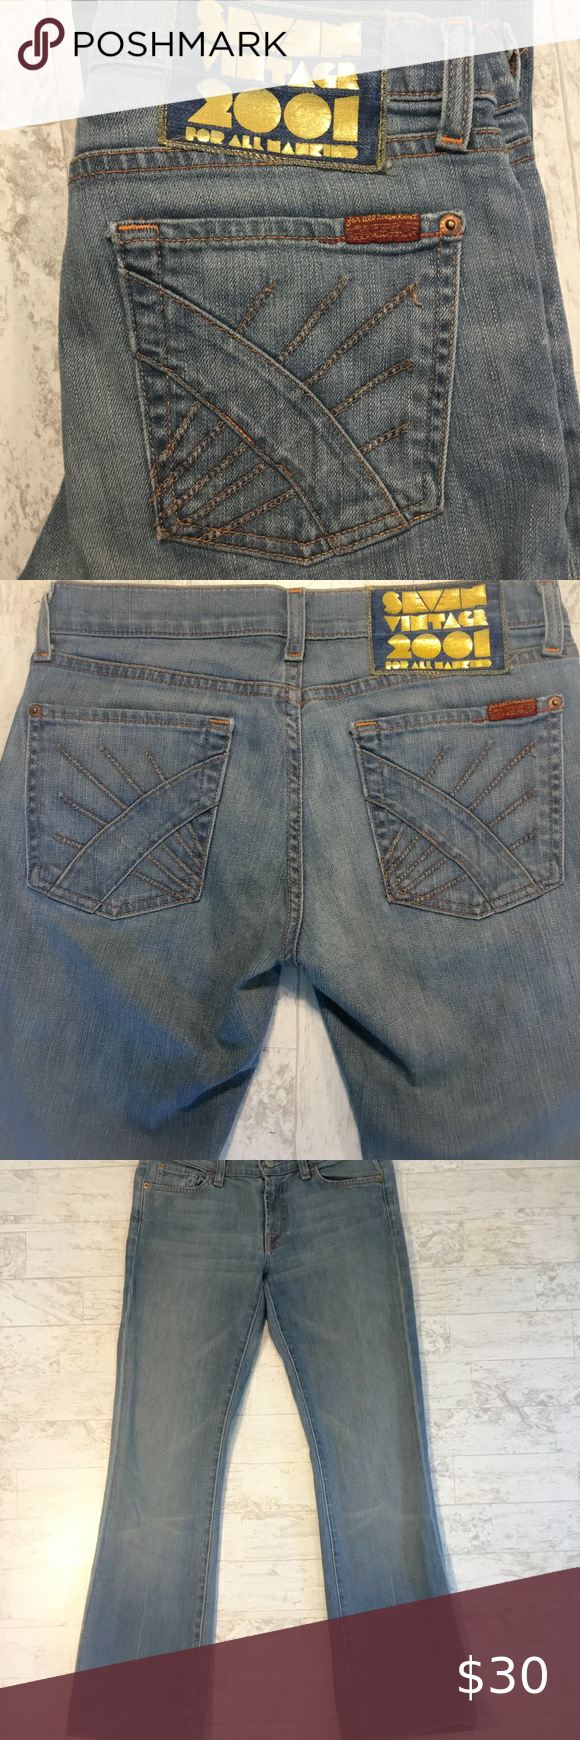 Gran roble Malversar Fruta vegetales  7 For All Mankind | Seven Vintage 2001 | 27 in 2020 | 7 for all mankind,  Jeans and boots, Clothes design